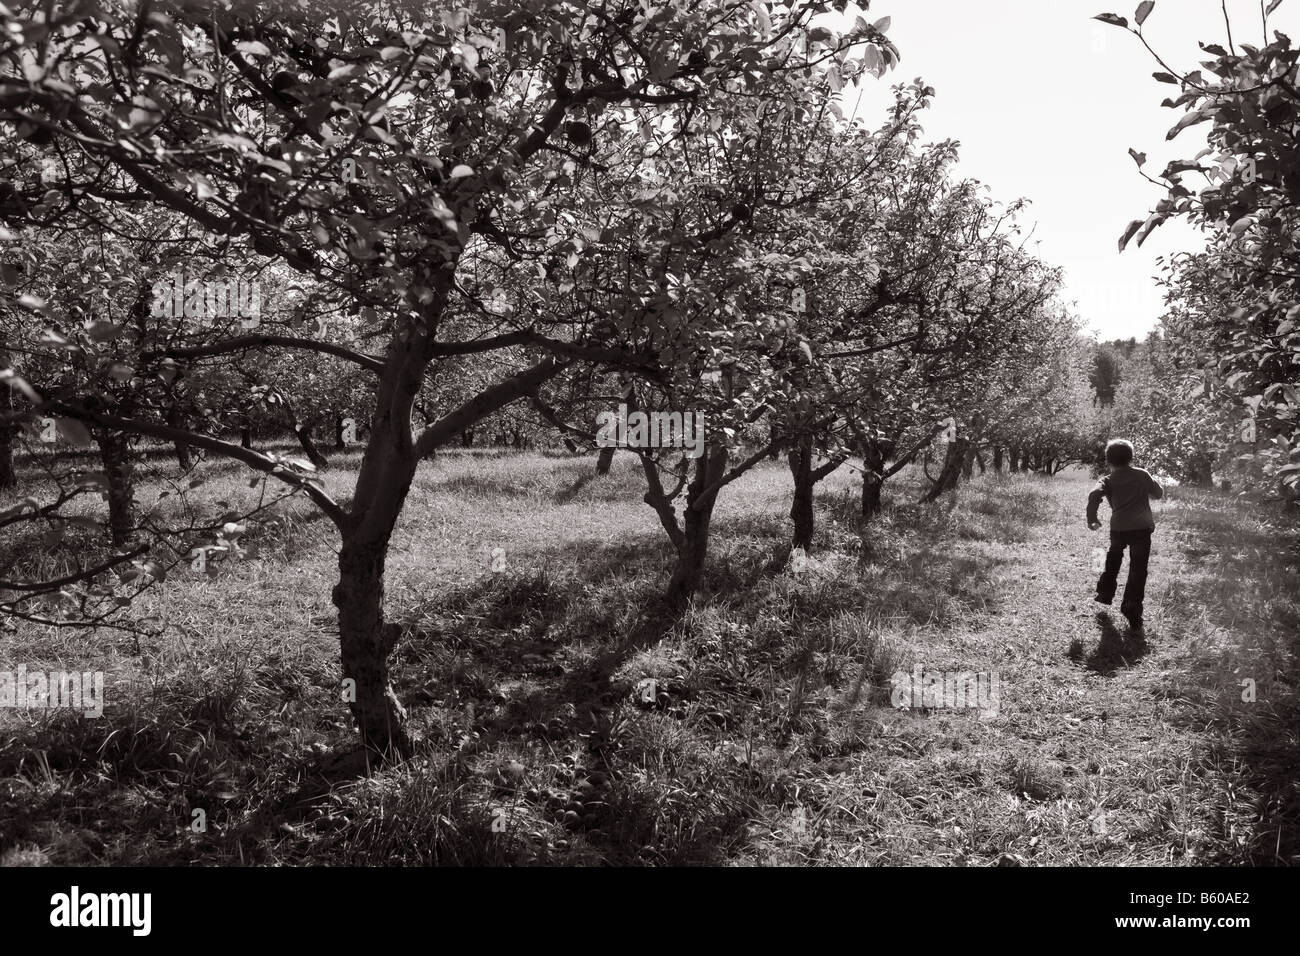 d333523854 Small Child running through Rows of Apple Trees in an Orchard during ...